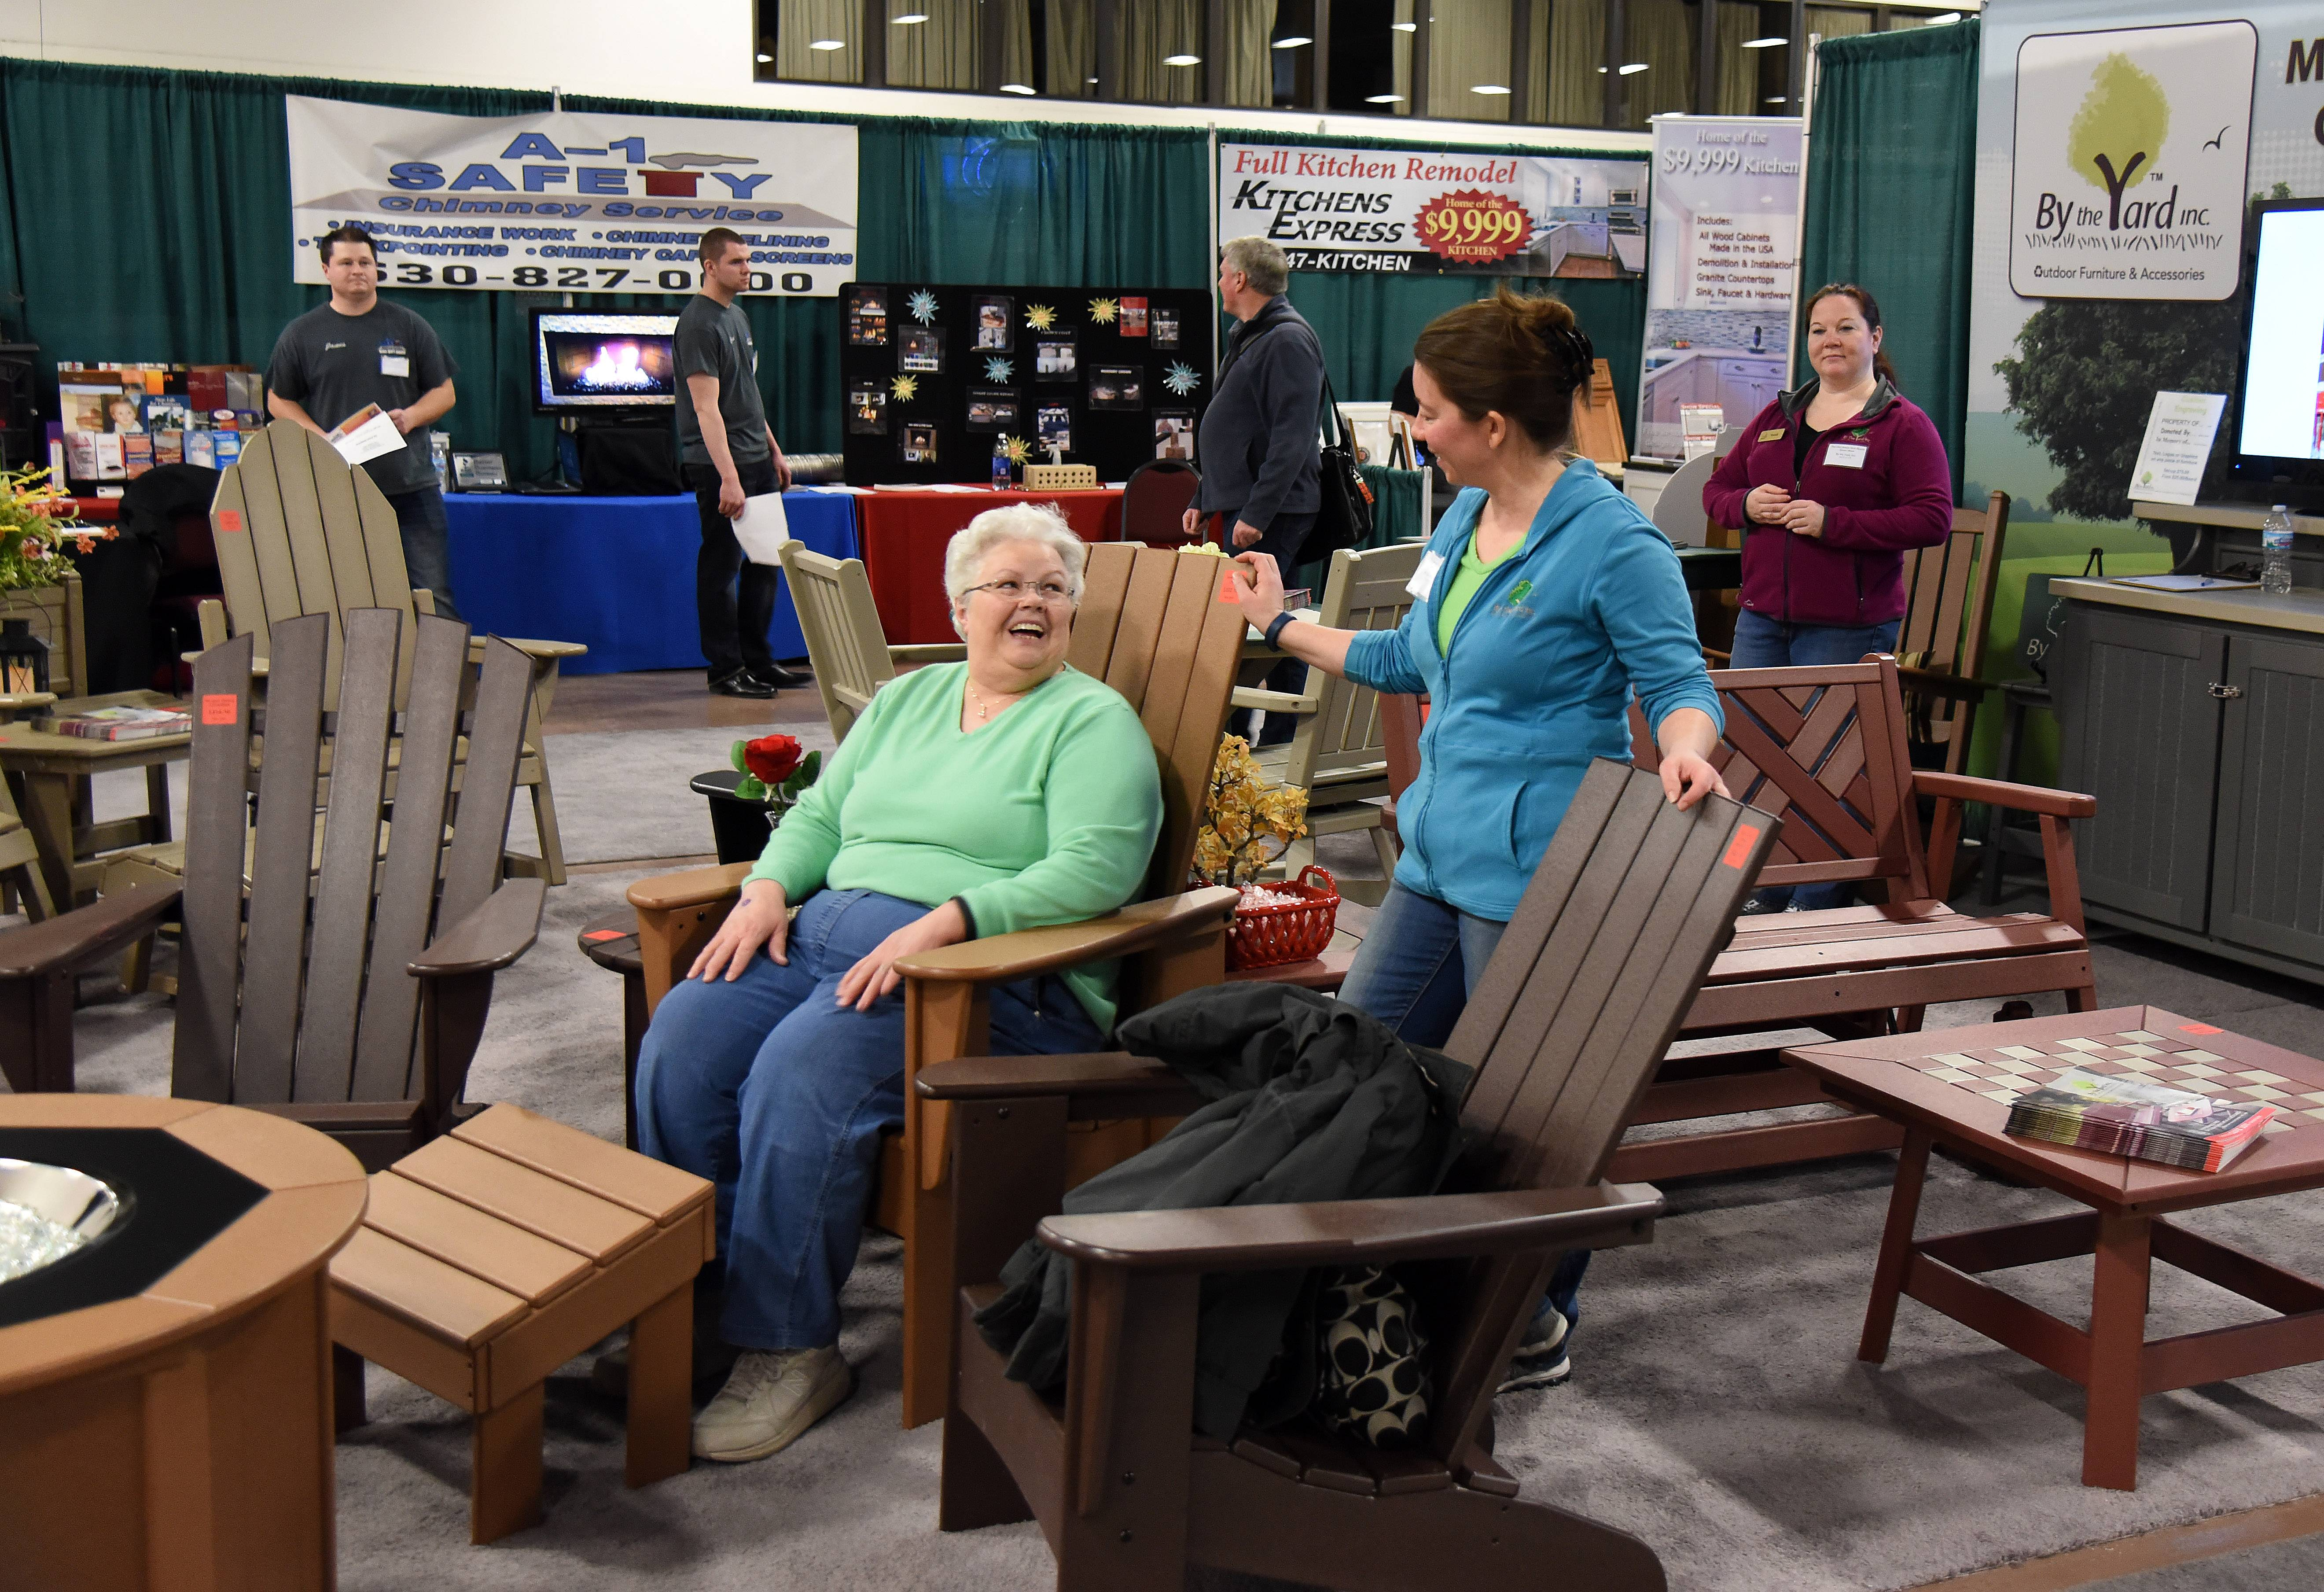 Kathy Lazzara of East Dundee checks out some all-weather outdoor furniture by By the Yard, Inc. at the Old House New House Show in St. Charles.